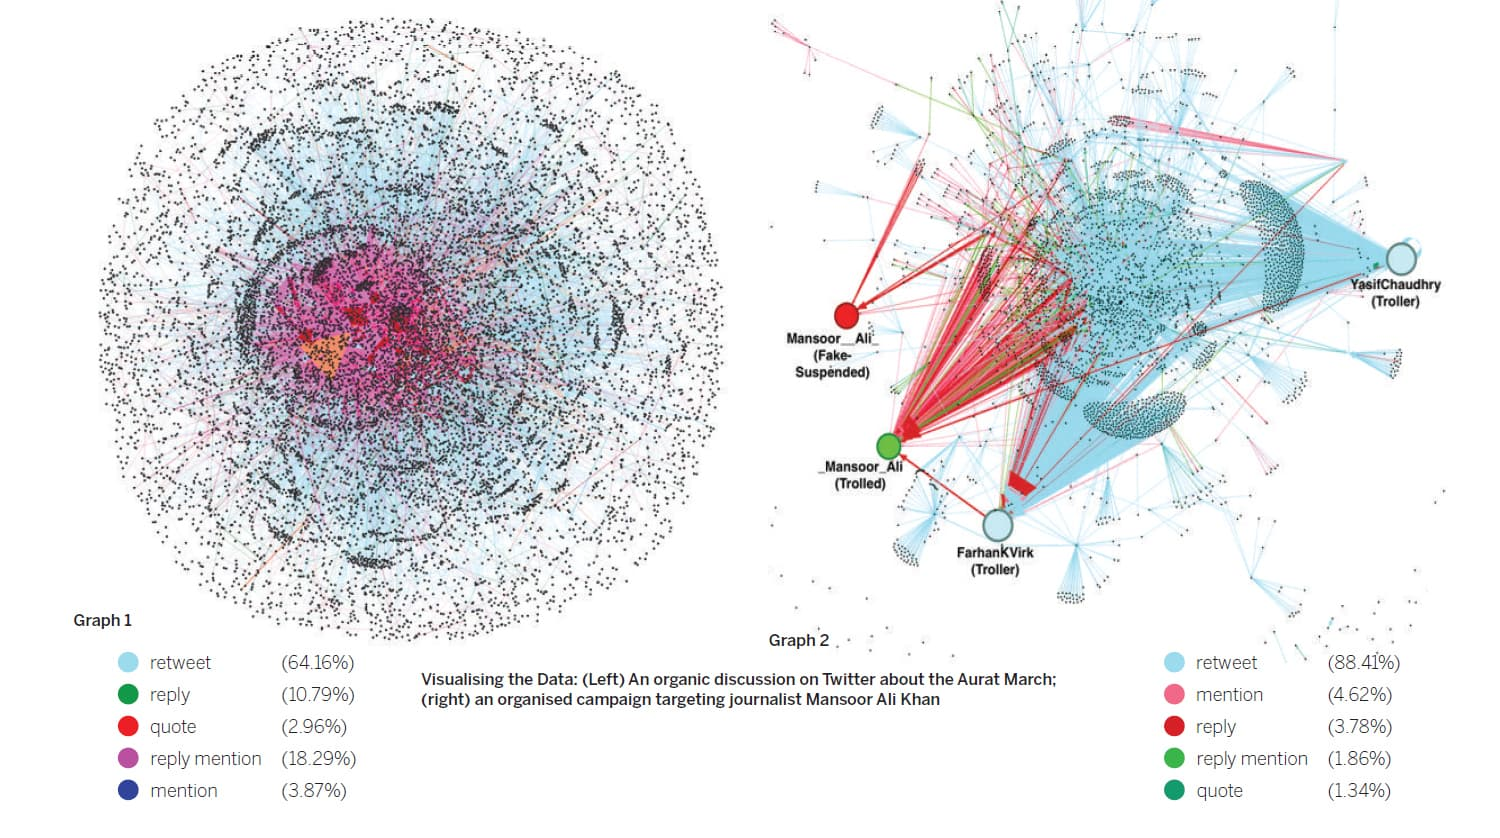 Visualising the data: (Graph 1, left) An organic discussion on Twitter about the Aurat March; (Graph 2, right) an organised campaign targeting journalist Mansoor Ali Khan. — Courtesy Saeed Rizwan